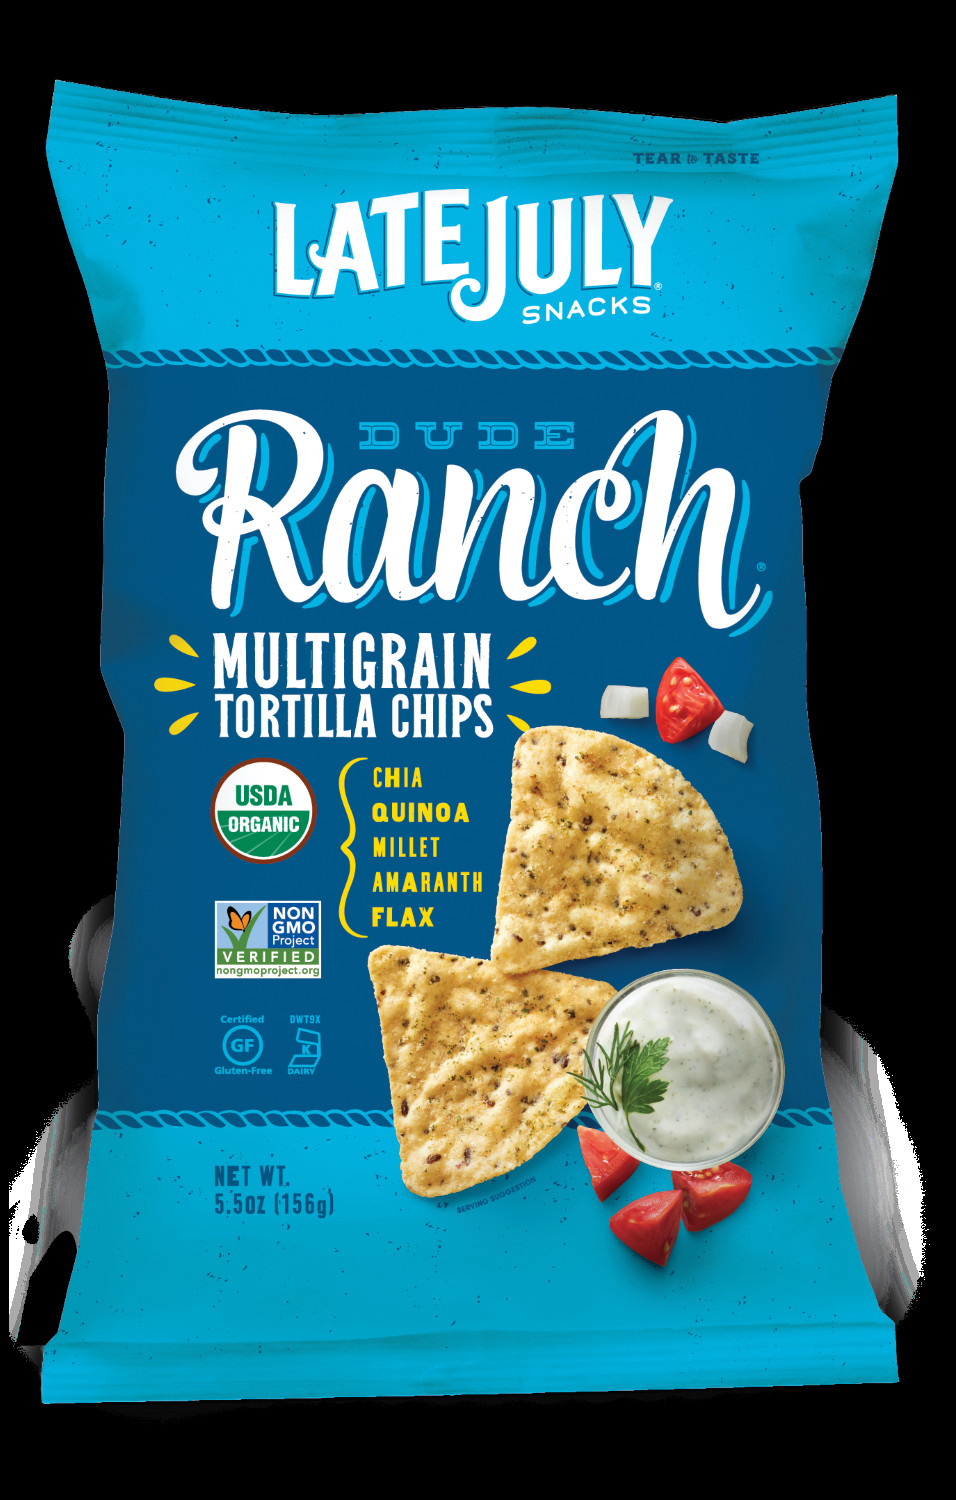 Late July Crackers  Late July Snacks Multigrain Tortilla Chips Dude Ranch 5